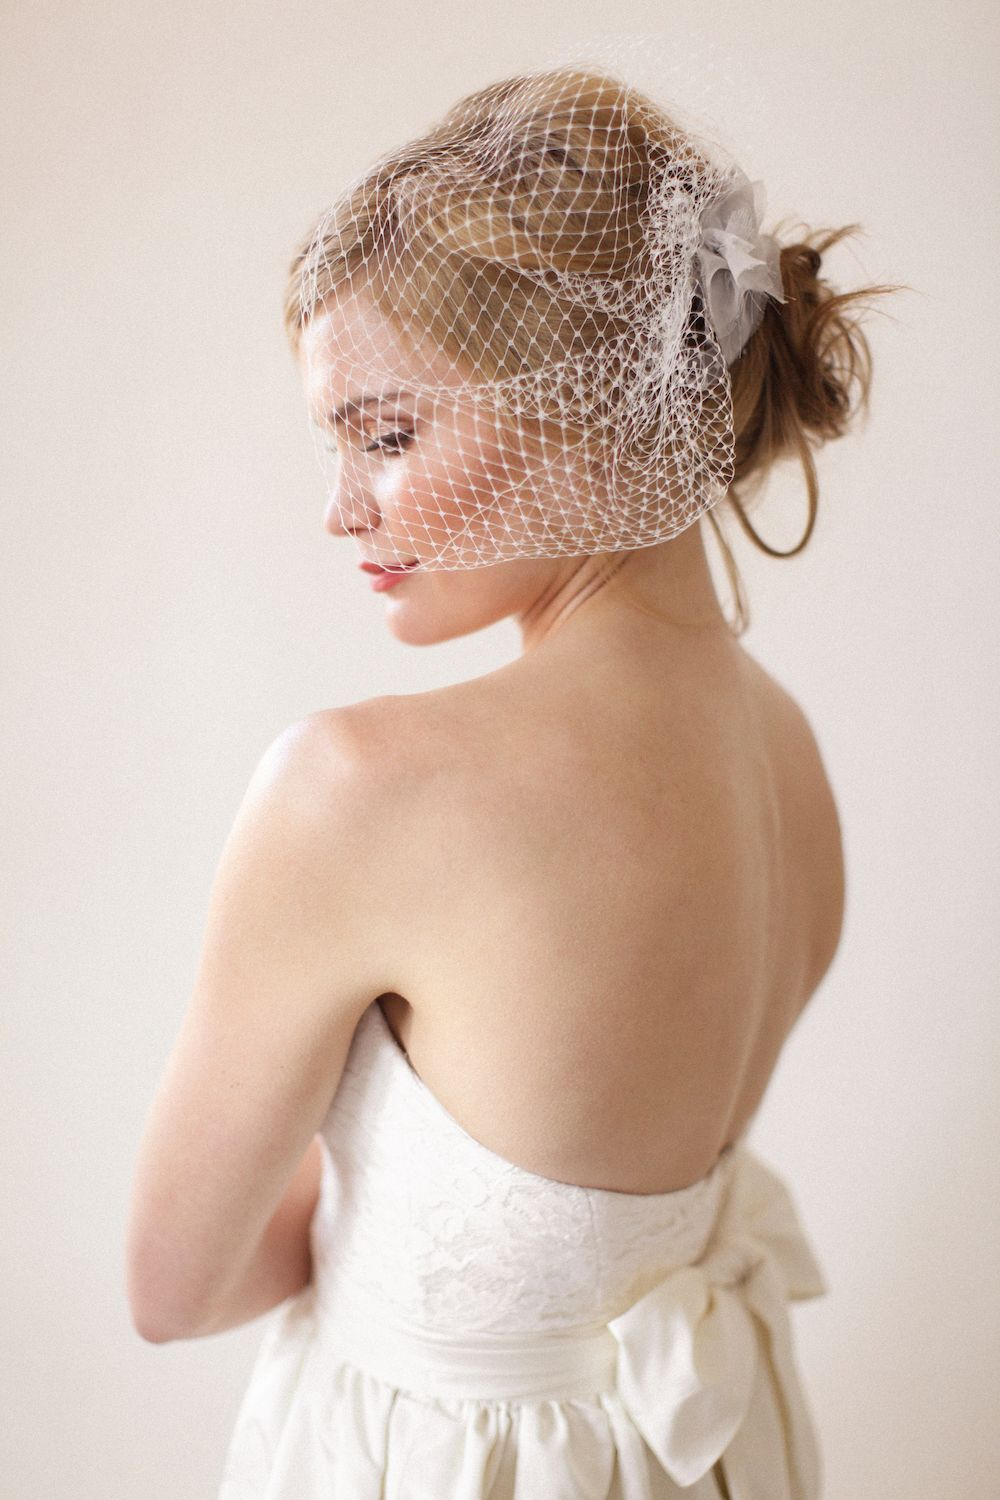 Aaron Snow Photography Oklahoma Wedding Photographer Bride Veil Birdcage Veil Heylee Dawson Dress Bride Beautiful